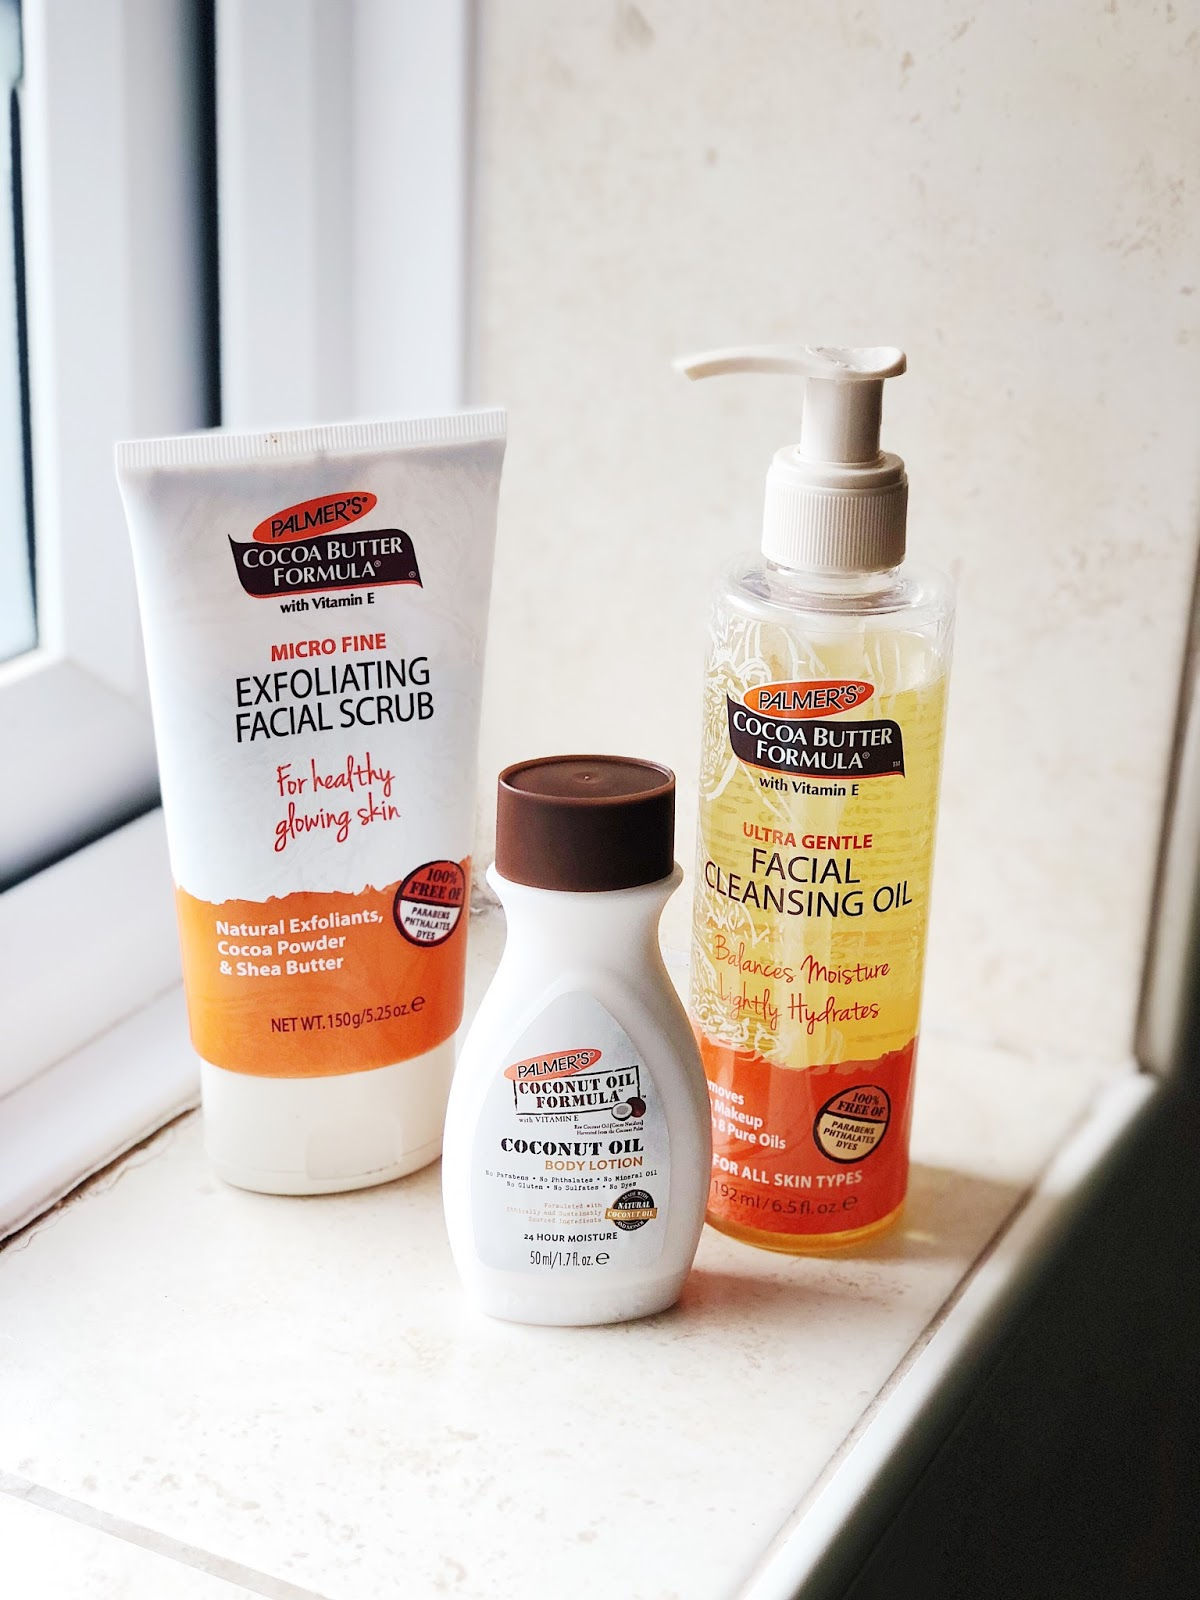 TESTING OUT PALMERS SKIN CARE!